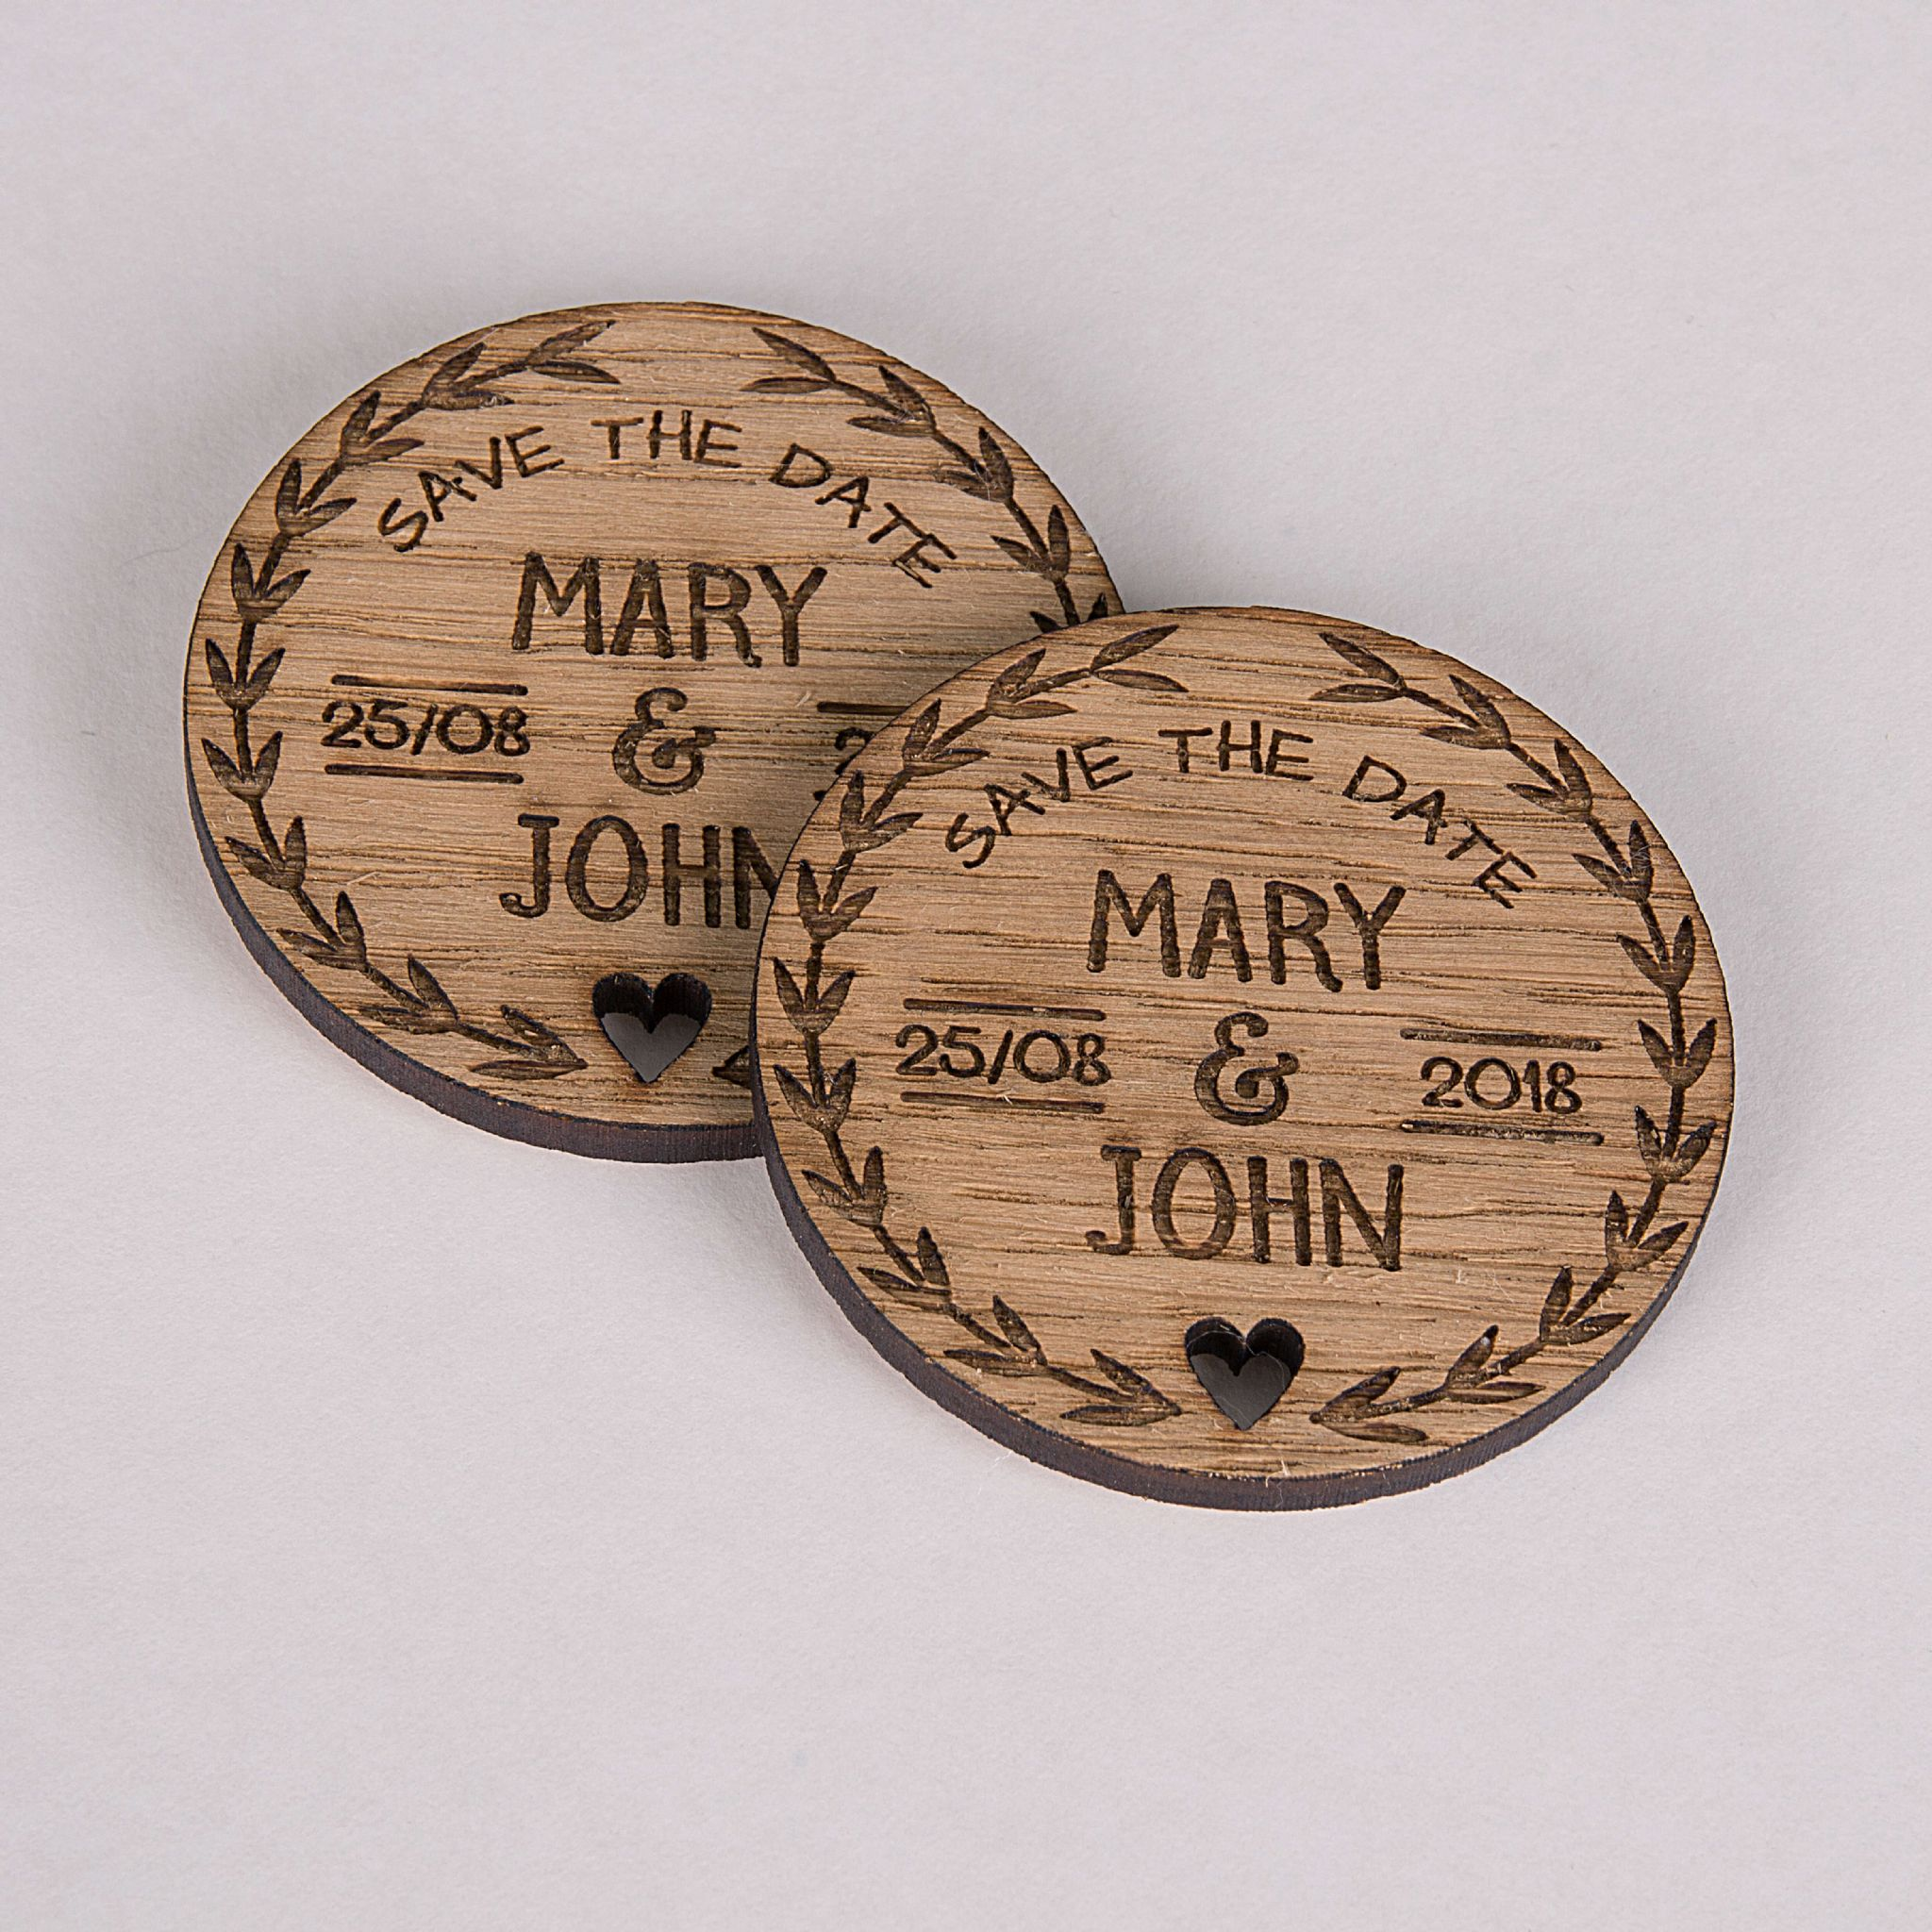 Little Gifts With Love - Personalised Rustic Oak Wooden Round Save The Date Fridge Magnet Invites